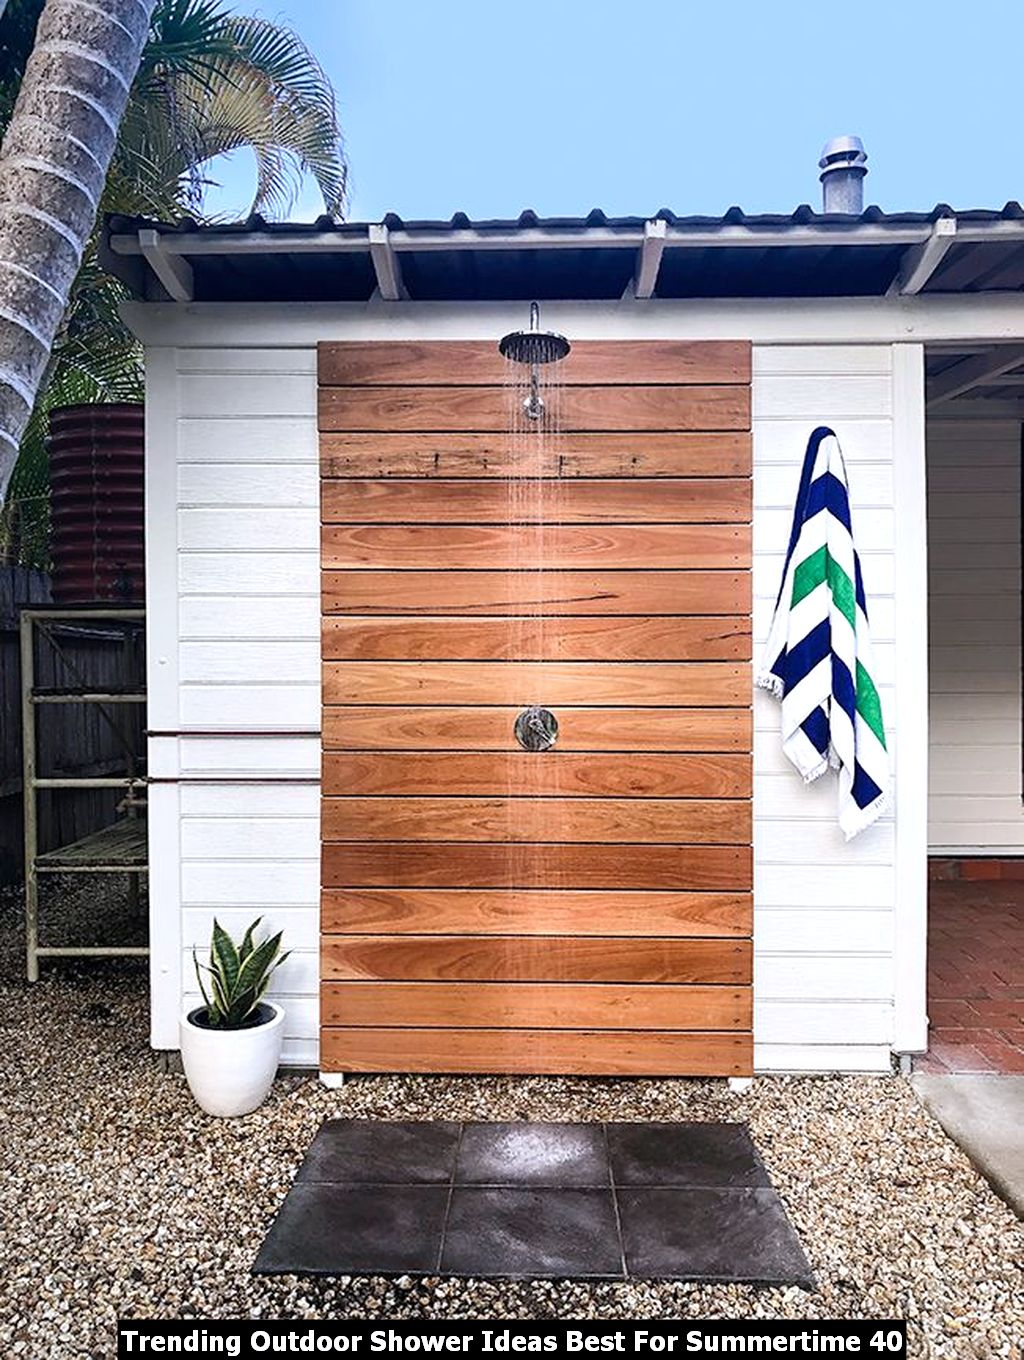 Trending Outdoor Shower Ideas Best For Summertime 40